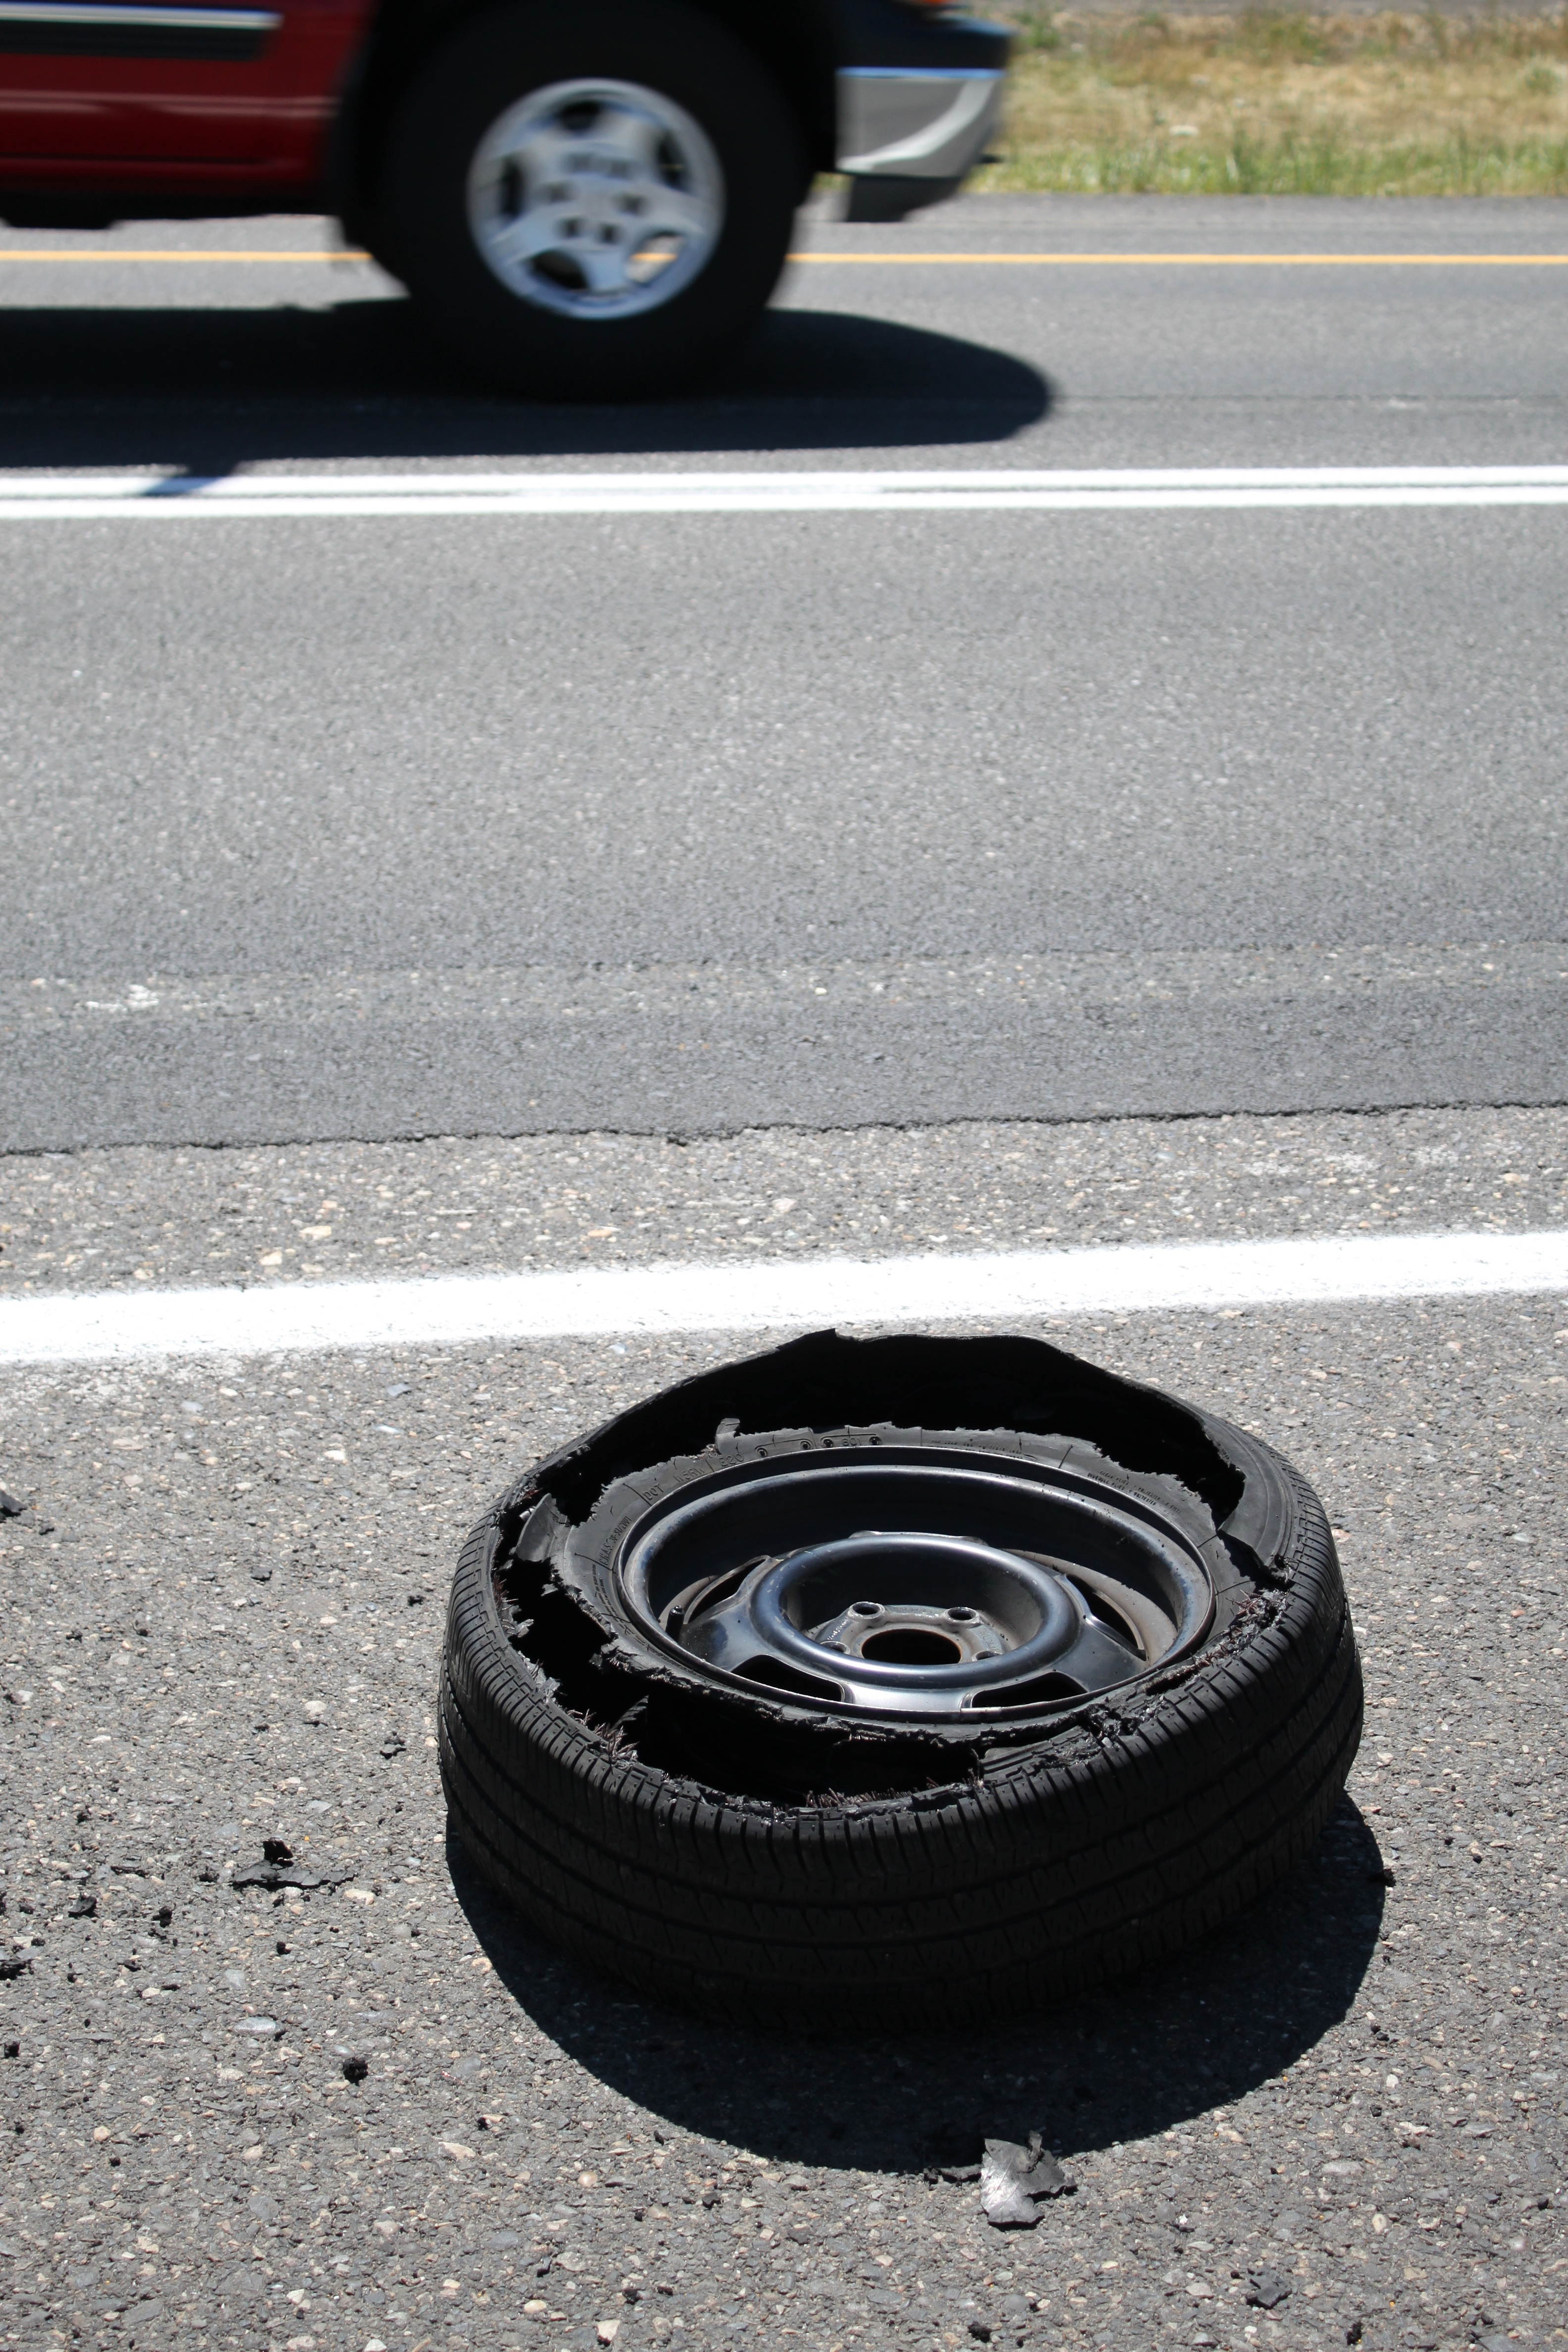 How to Drive When Having a Tire Blowout